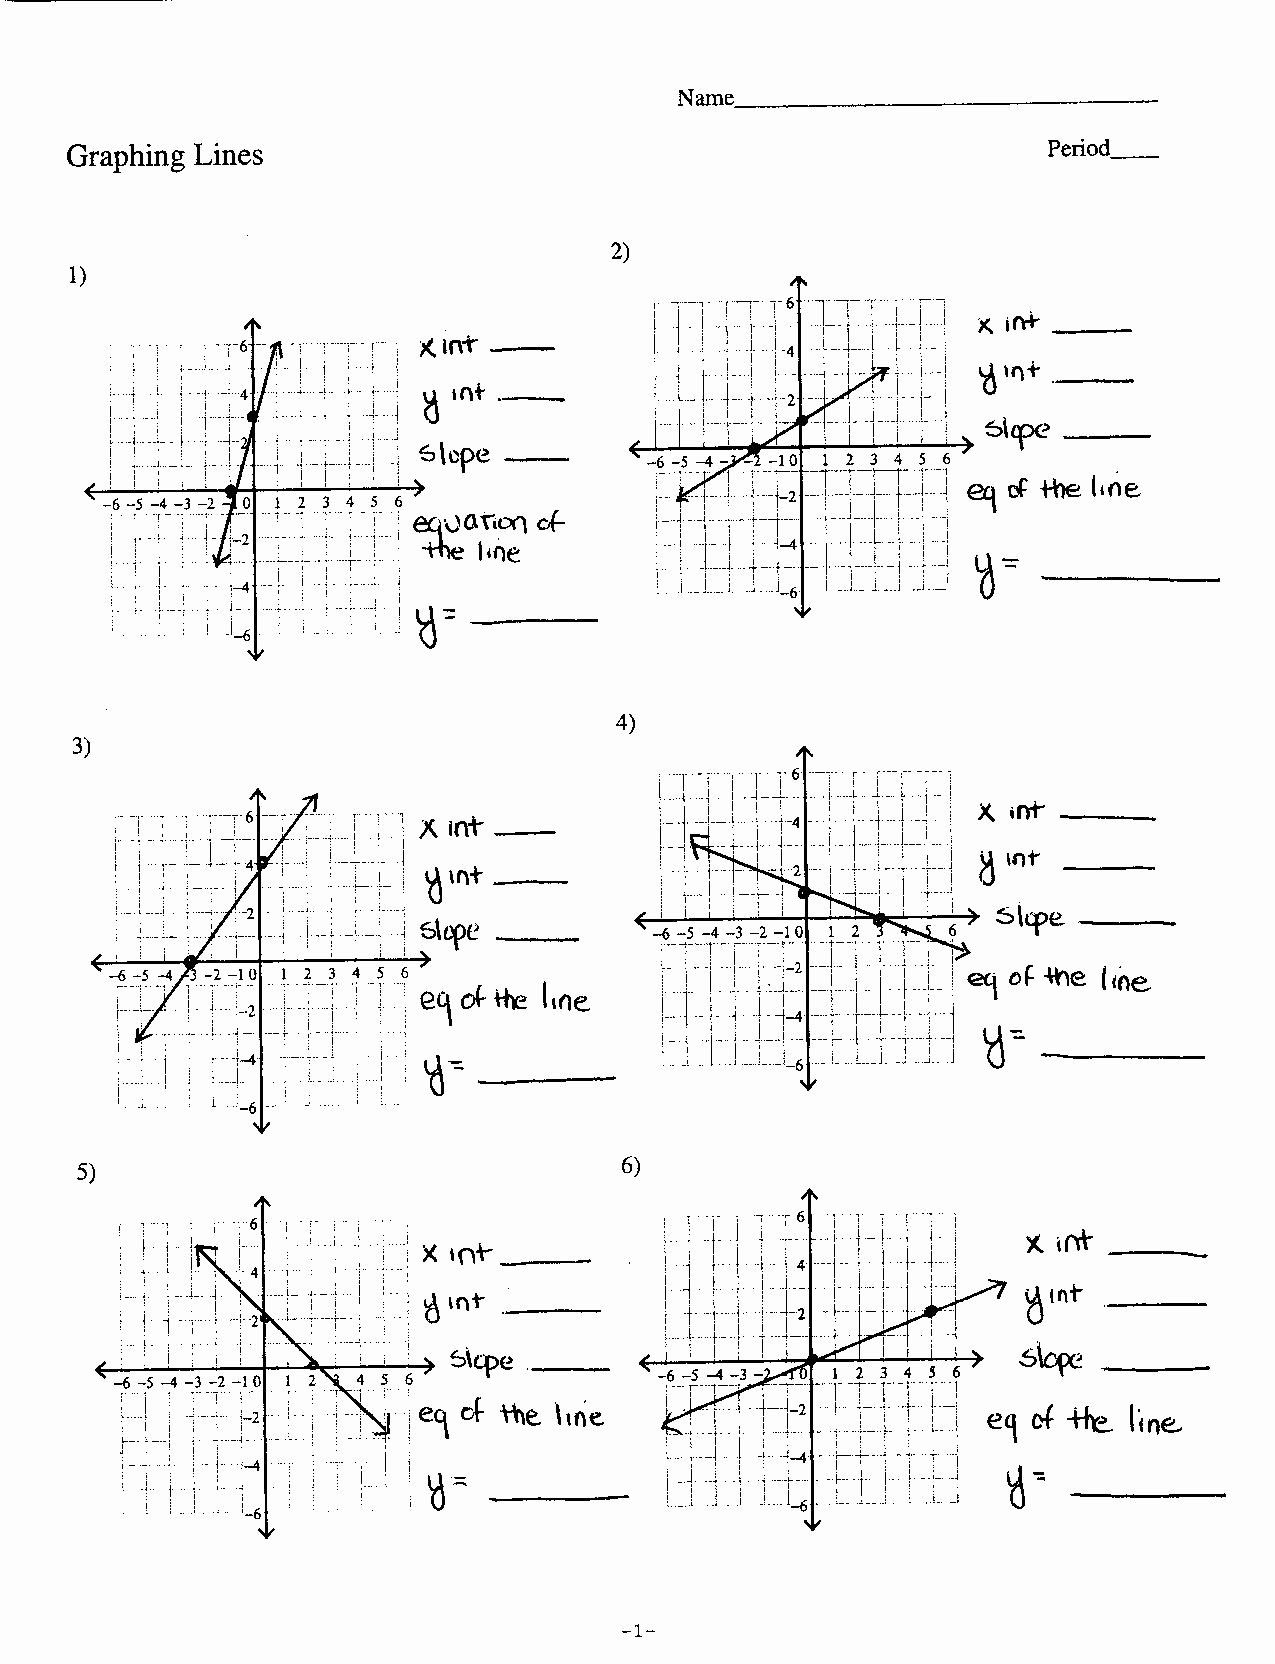 Graphing Linear Inequalities Worksheet Answers Elegant Two ...